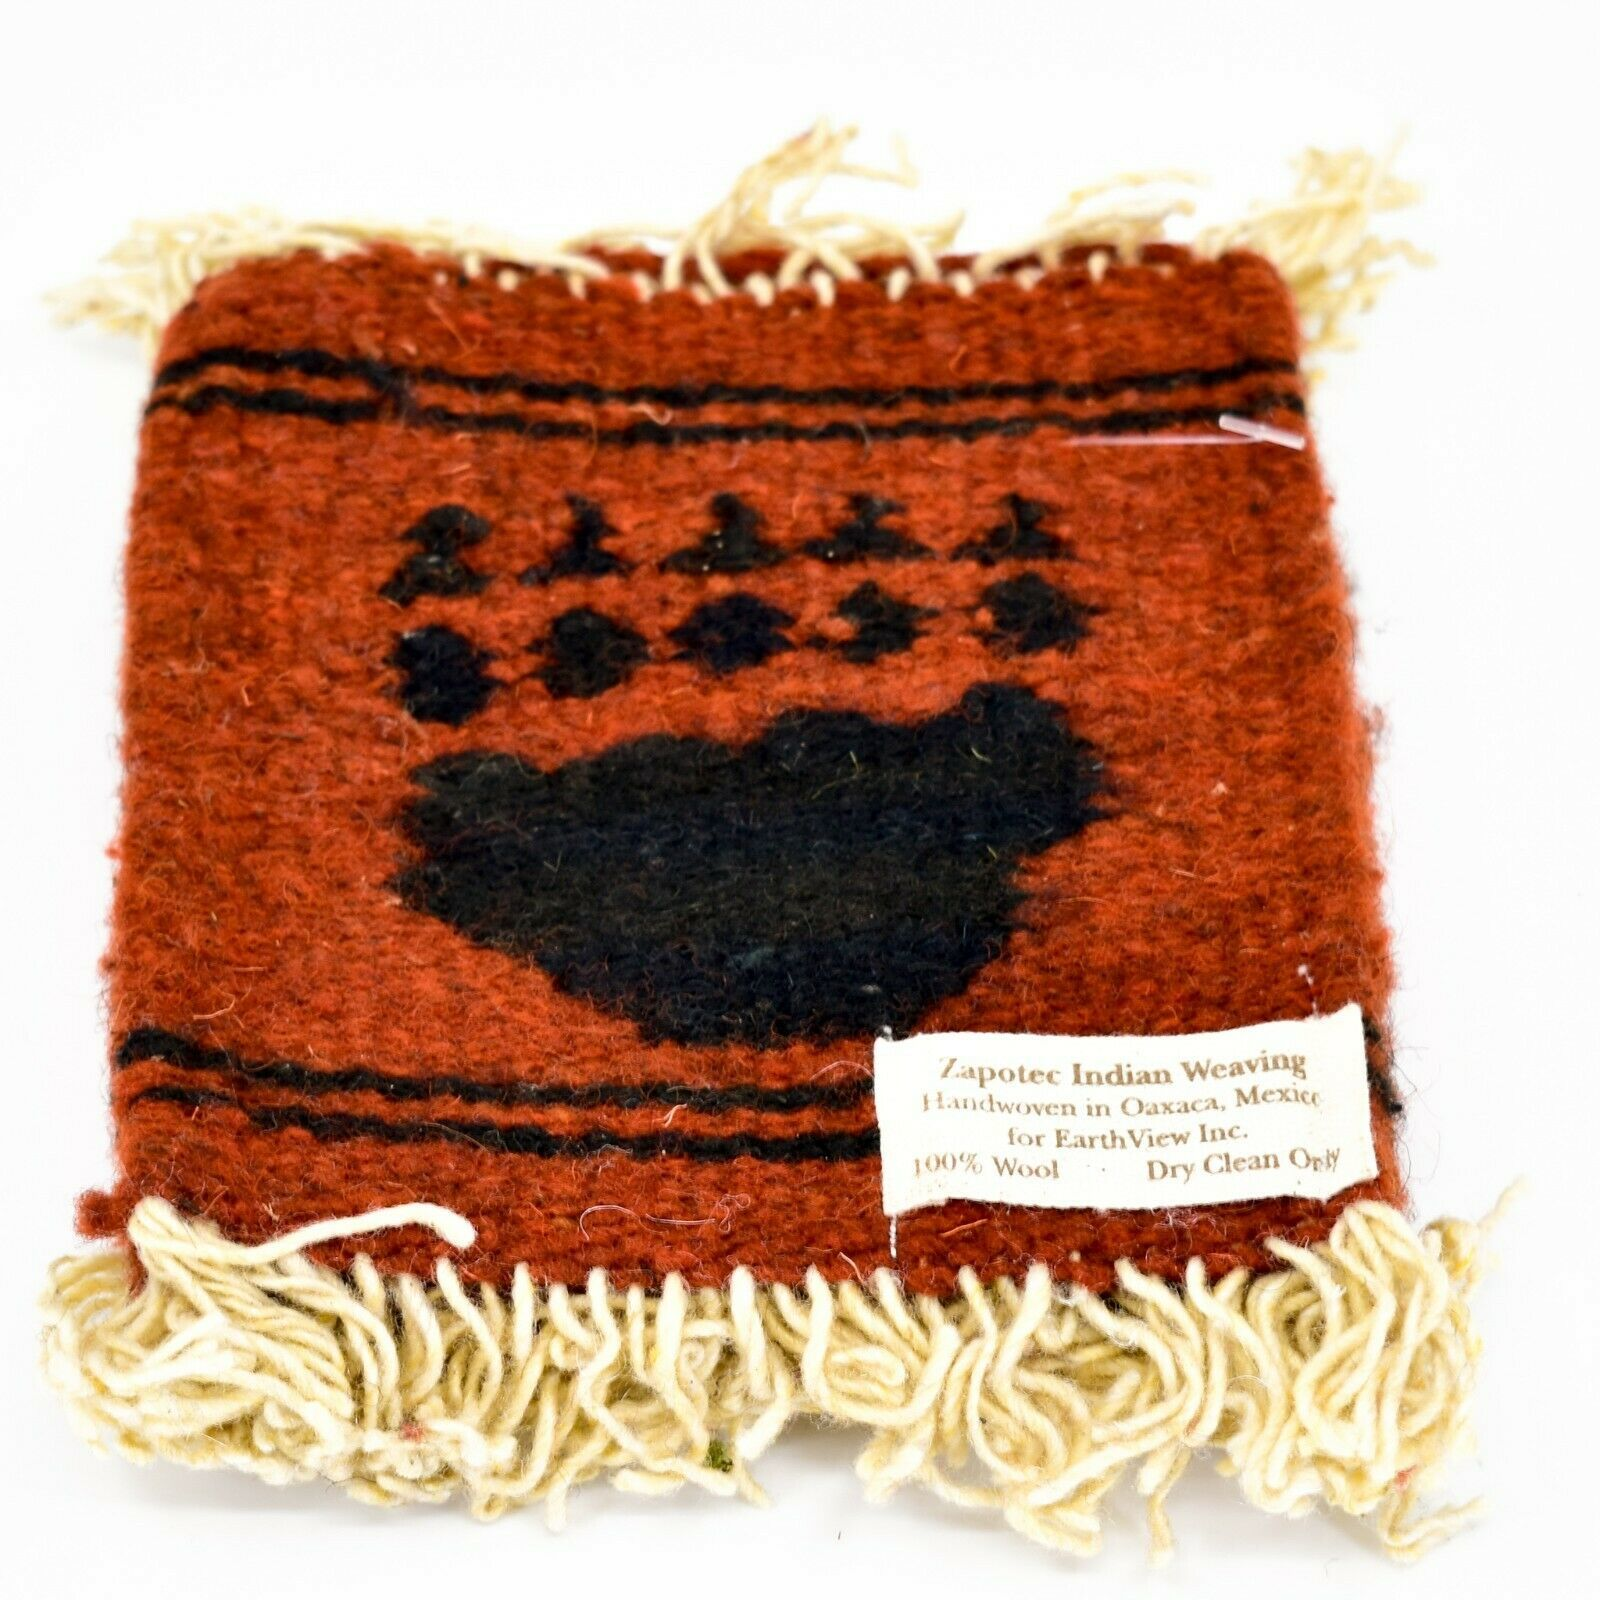 Handmade Zapotec Indian Weaving Hand-Woven Bear Paw Red Wool Coaster Set of 4